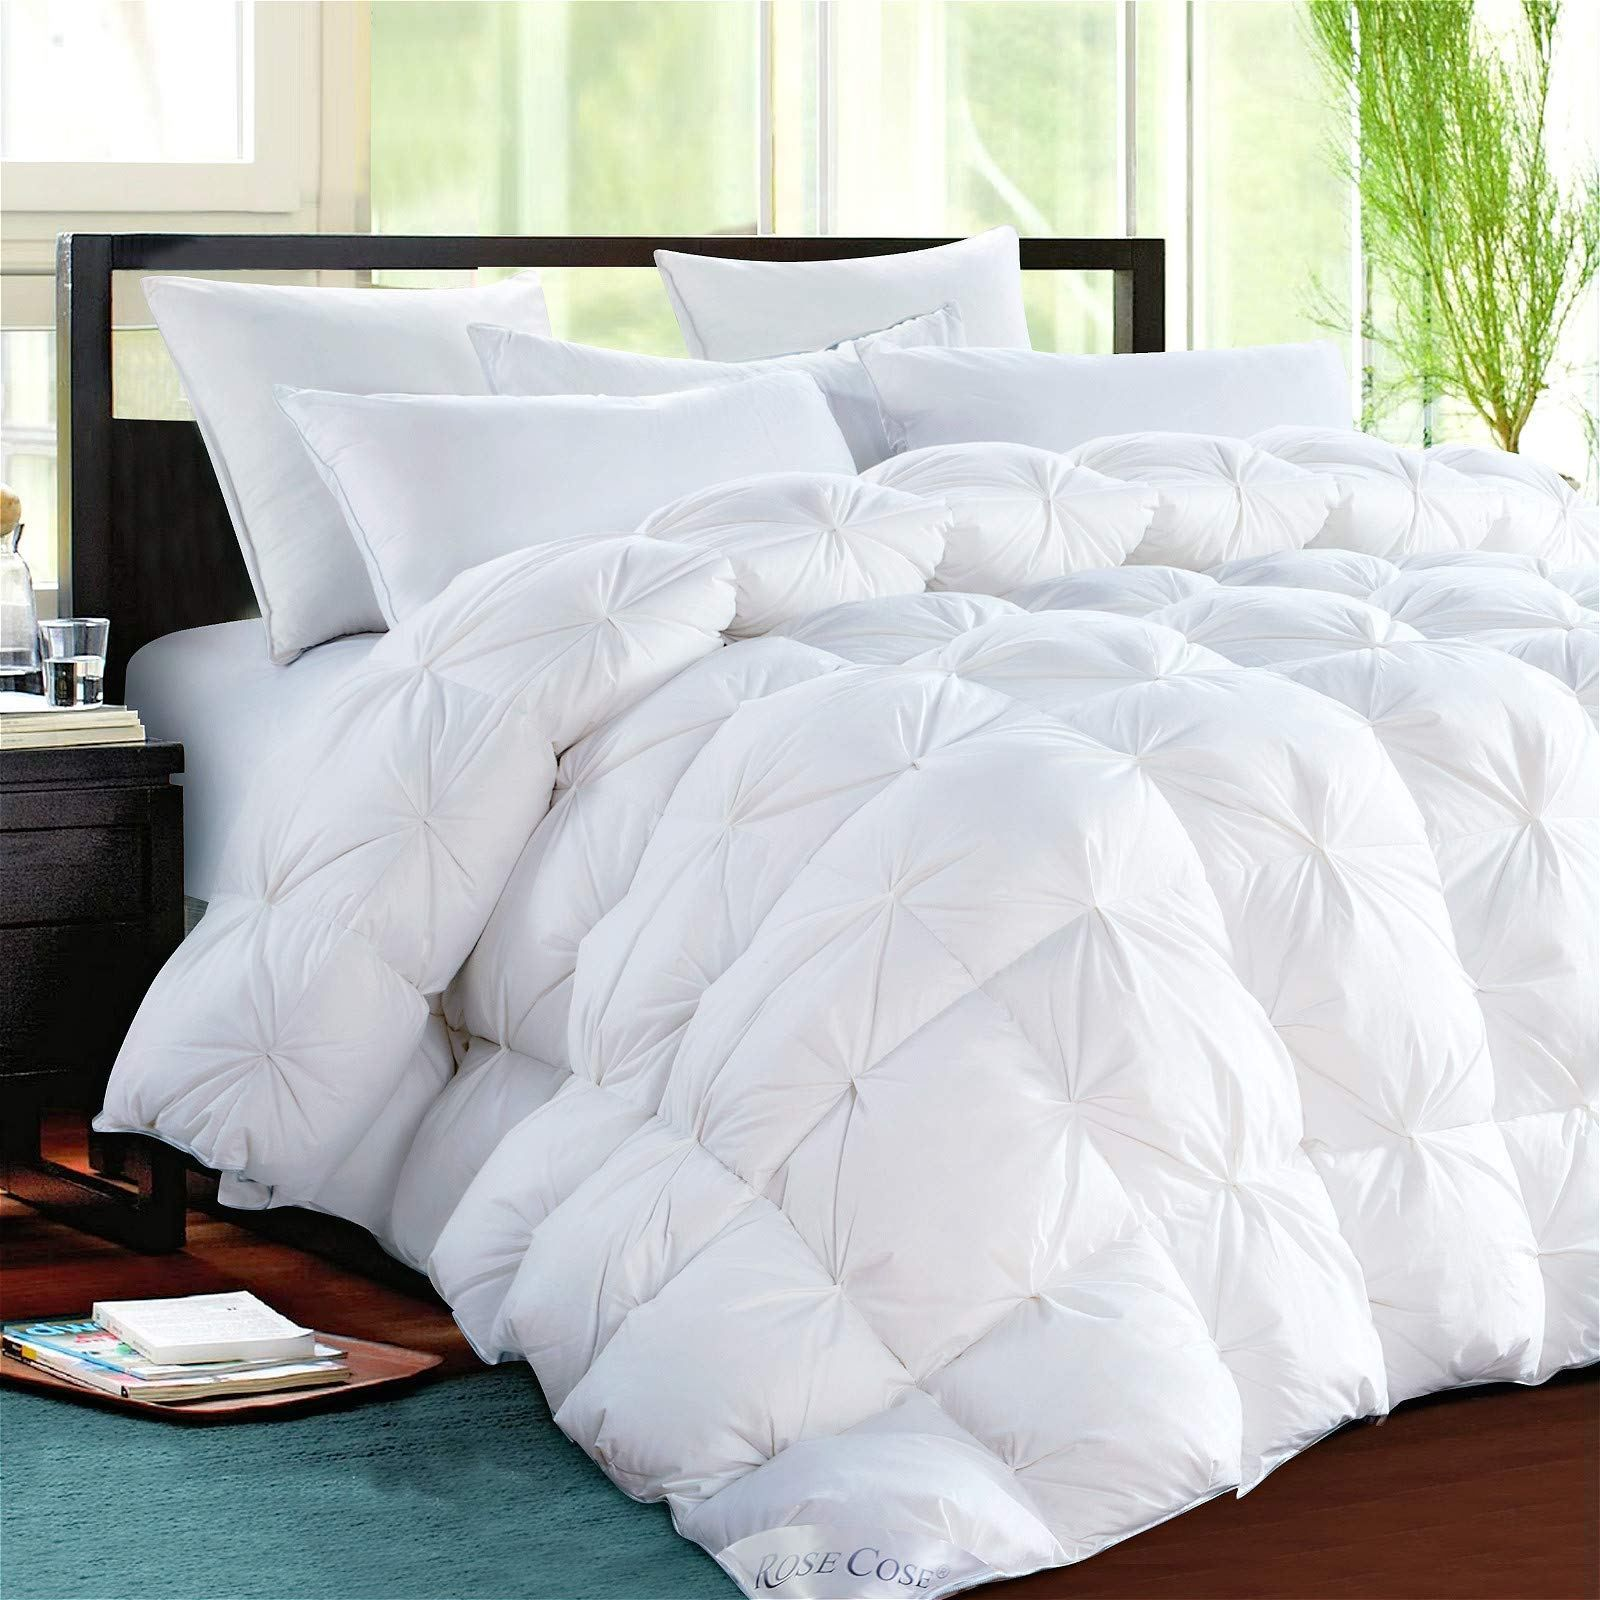 Rosecose Luxurious Heavy Goose Down Comforter Duvet Insert Pinch